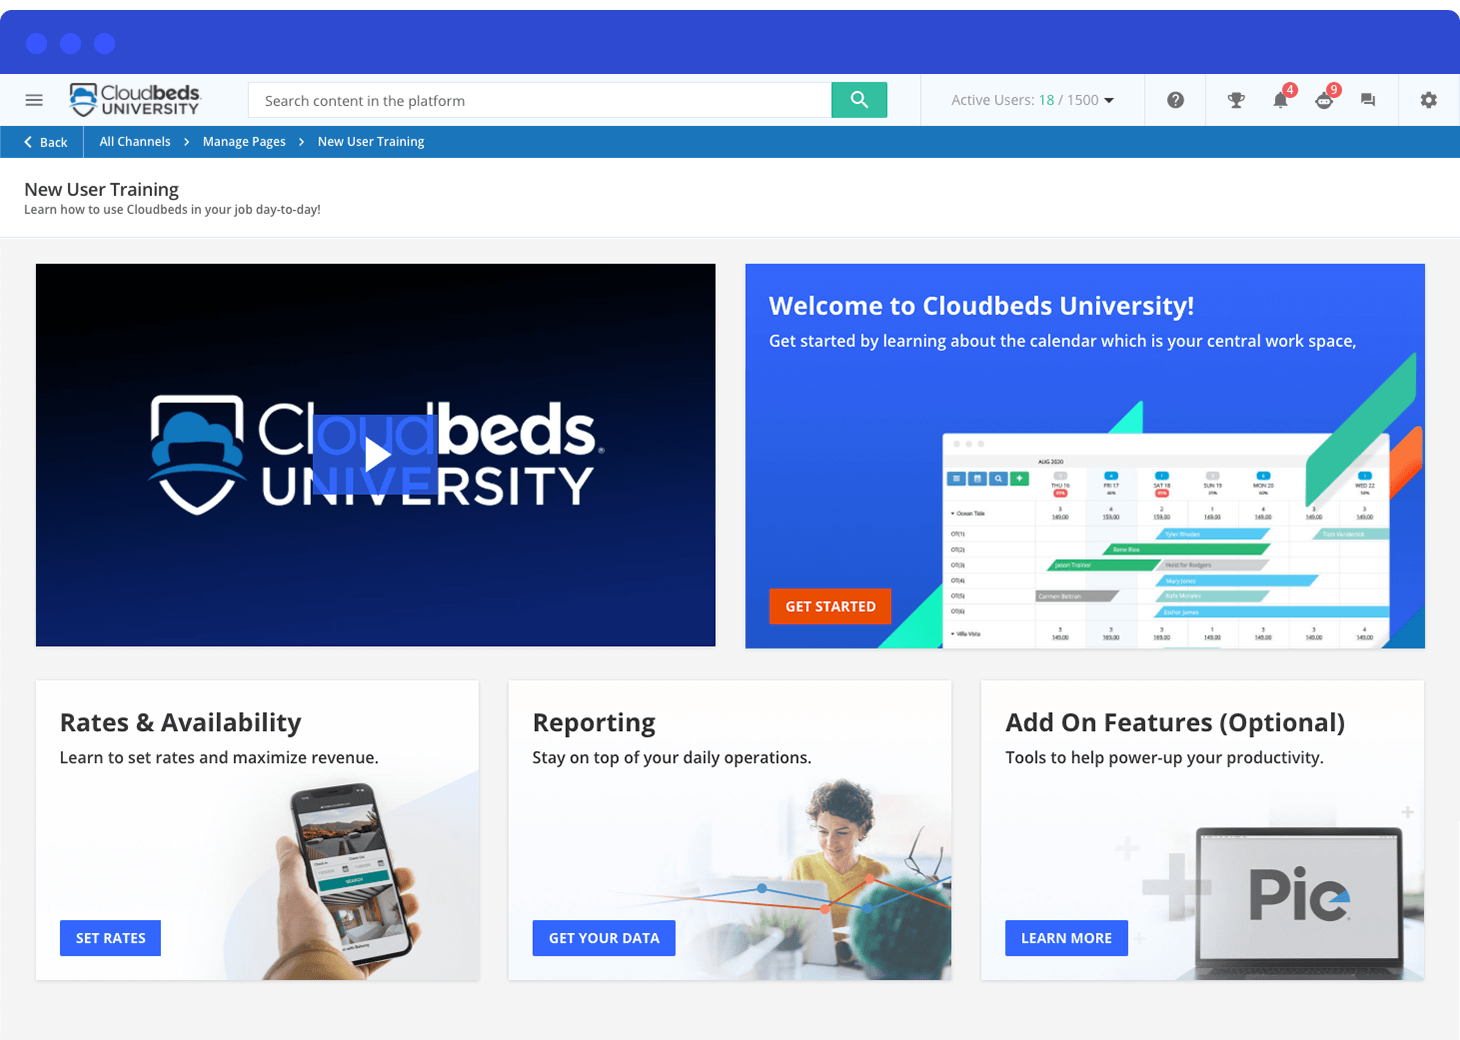 Cloudbeds University